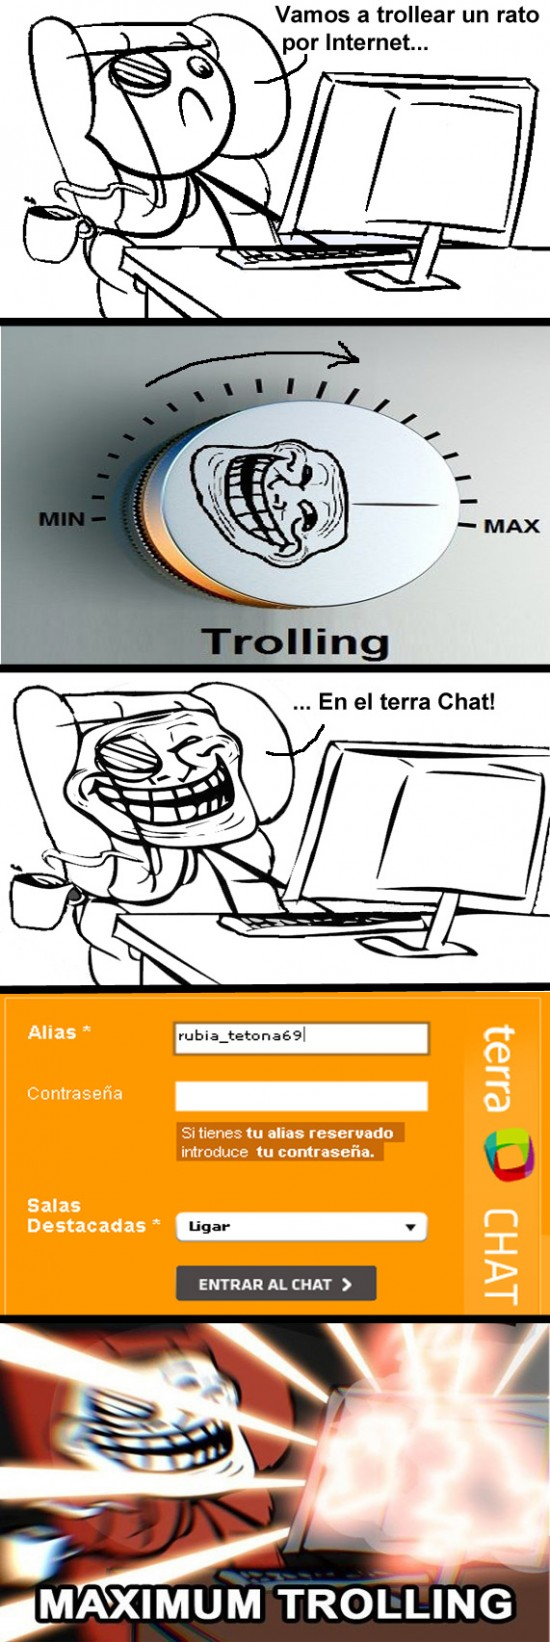 chat,hacerse pasar por chica,muchacha,nick sugerente,terra,troll,trollear